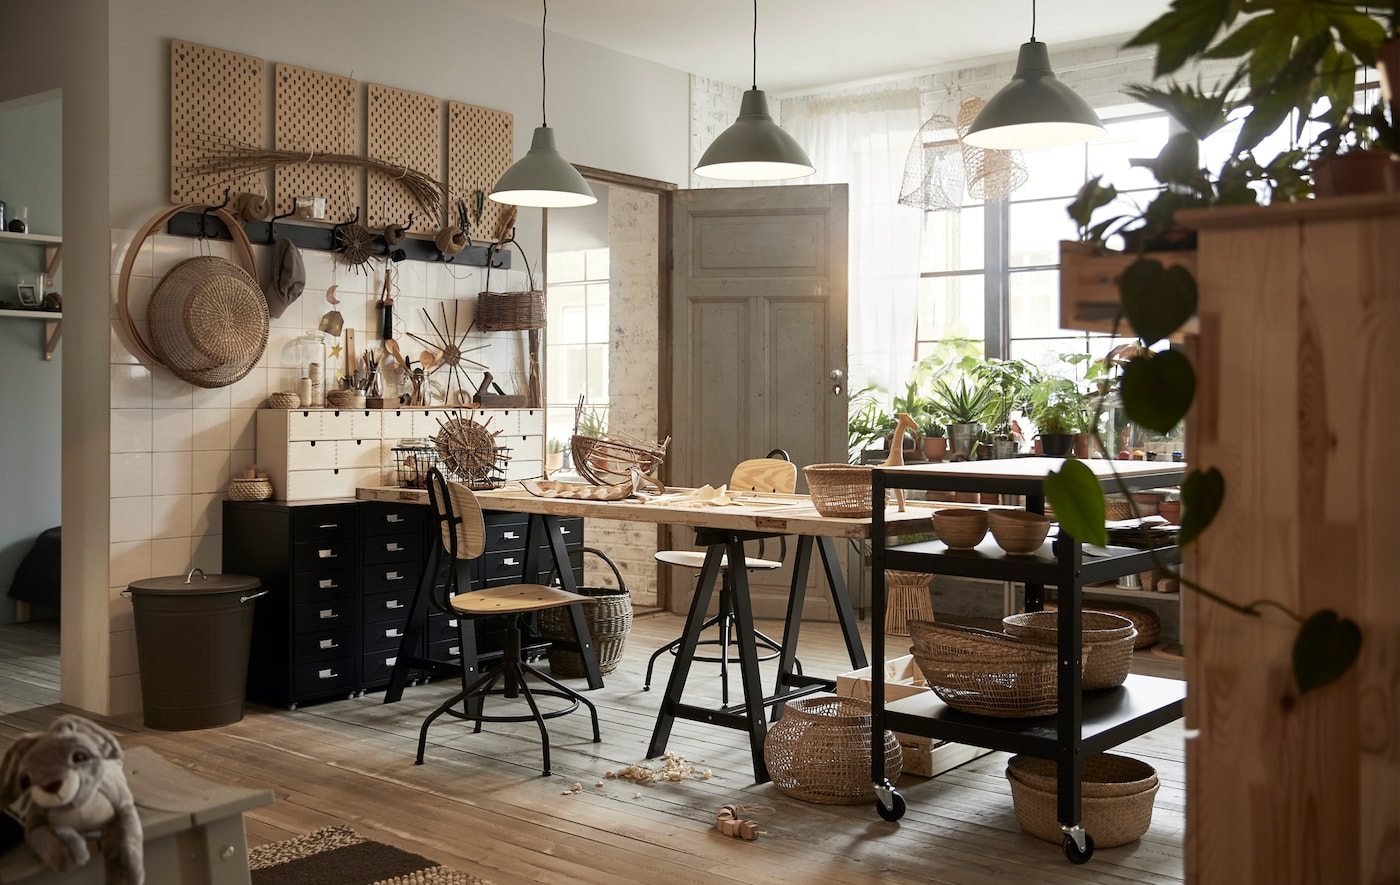 A workroom area filled with tables, swivel chairs, filing cabinets, hooks, baskets and plants.